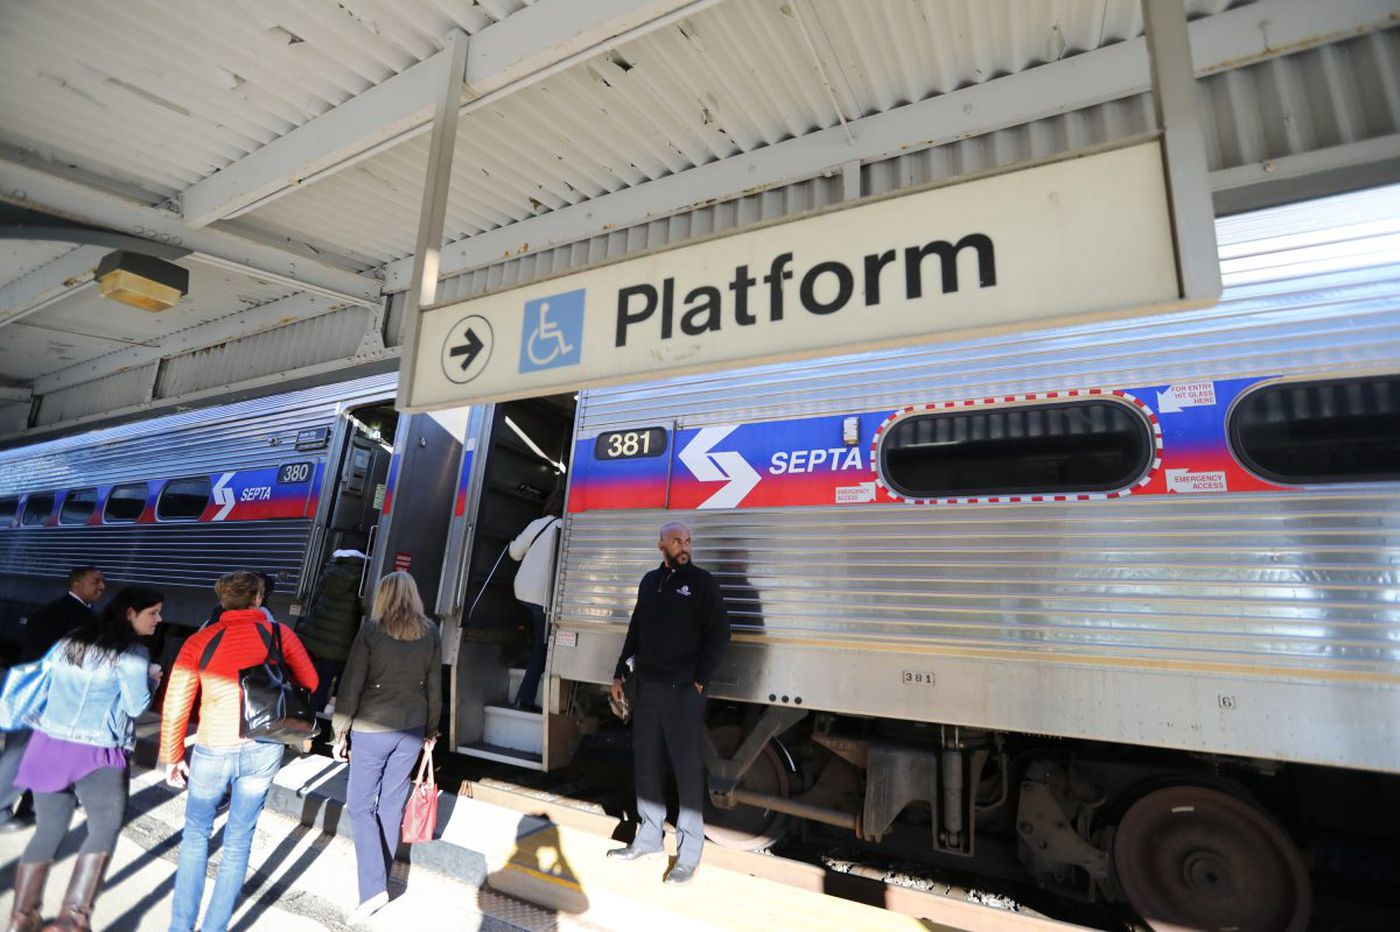 SEPTA's trains are late less. Riders know more. A new railroad safety system helped with both